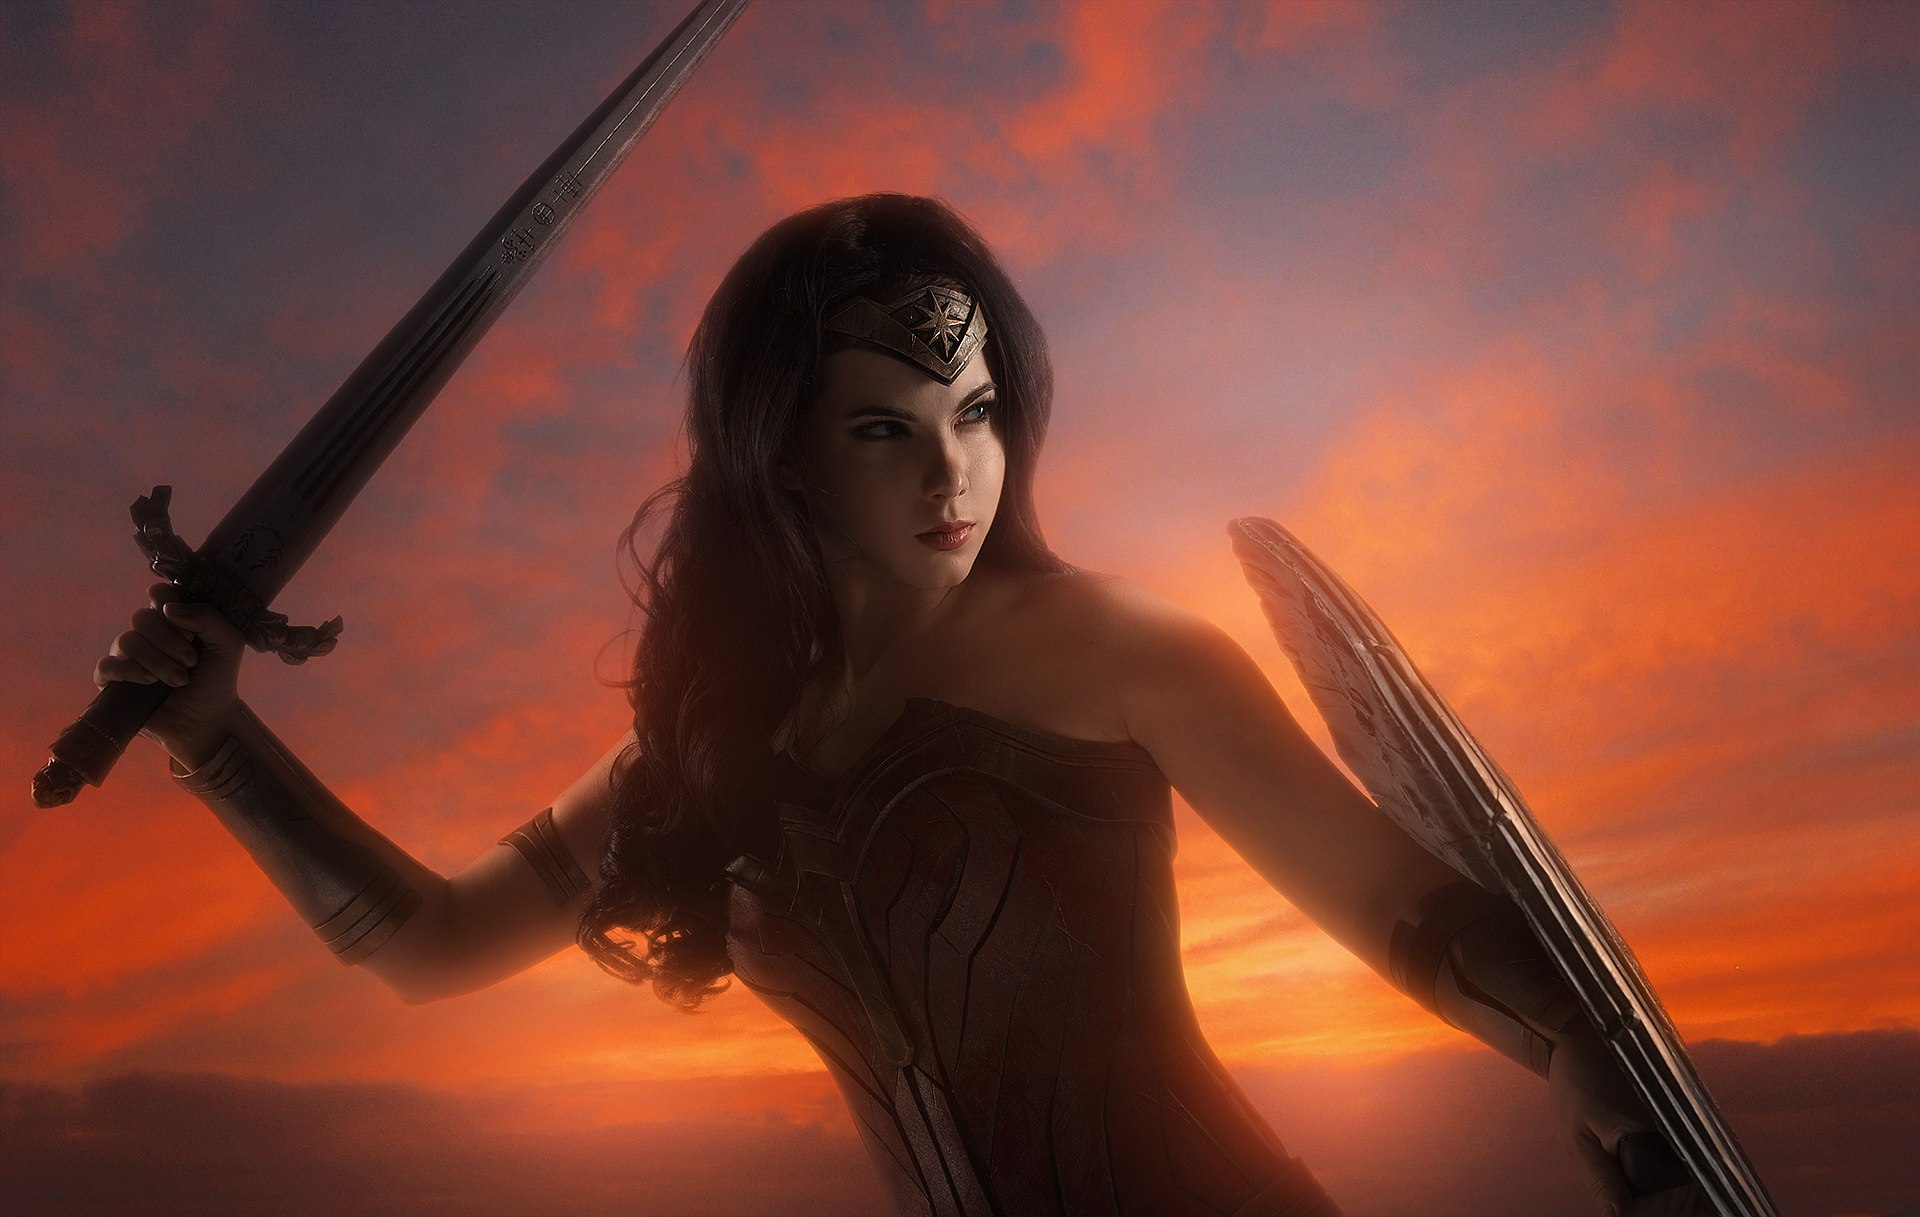 We're still getting hyped for the Wonder Woman movie release on June 2nd and celebrate today with this cosplay offering from cosplayer Anastasya Zelenova that's so impressive you'll think the following photos are extra promo stills from the movie itself.  Big ups to photographer Sergey Shetukhin for creating such amazing atmosphere as well.